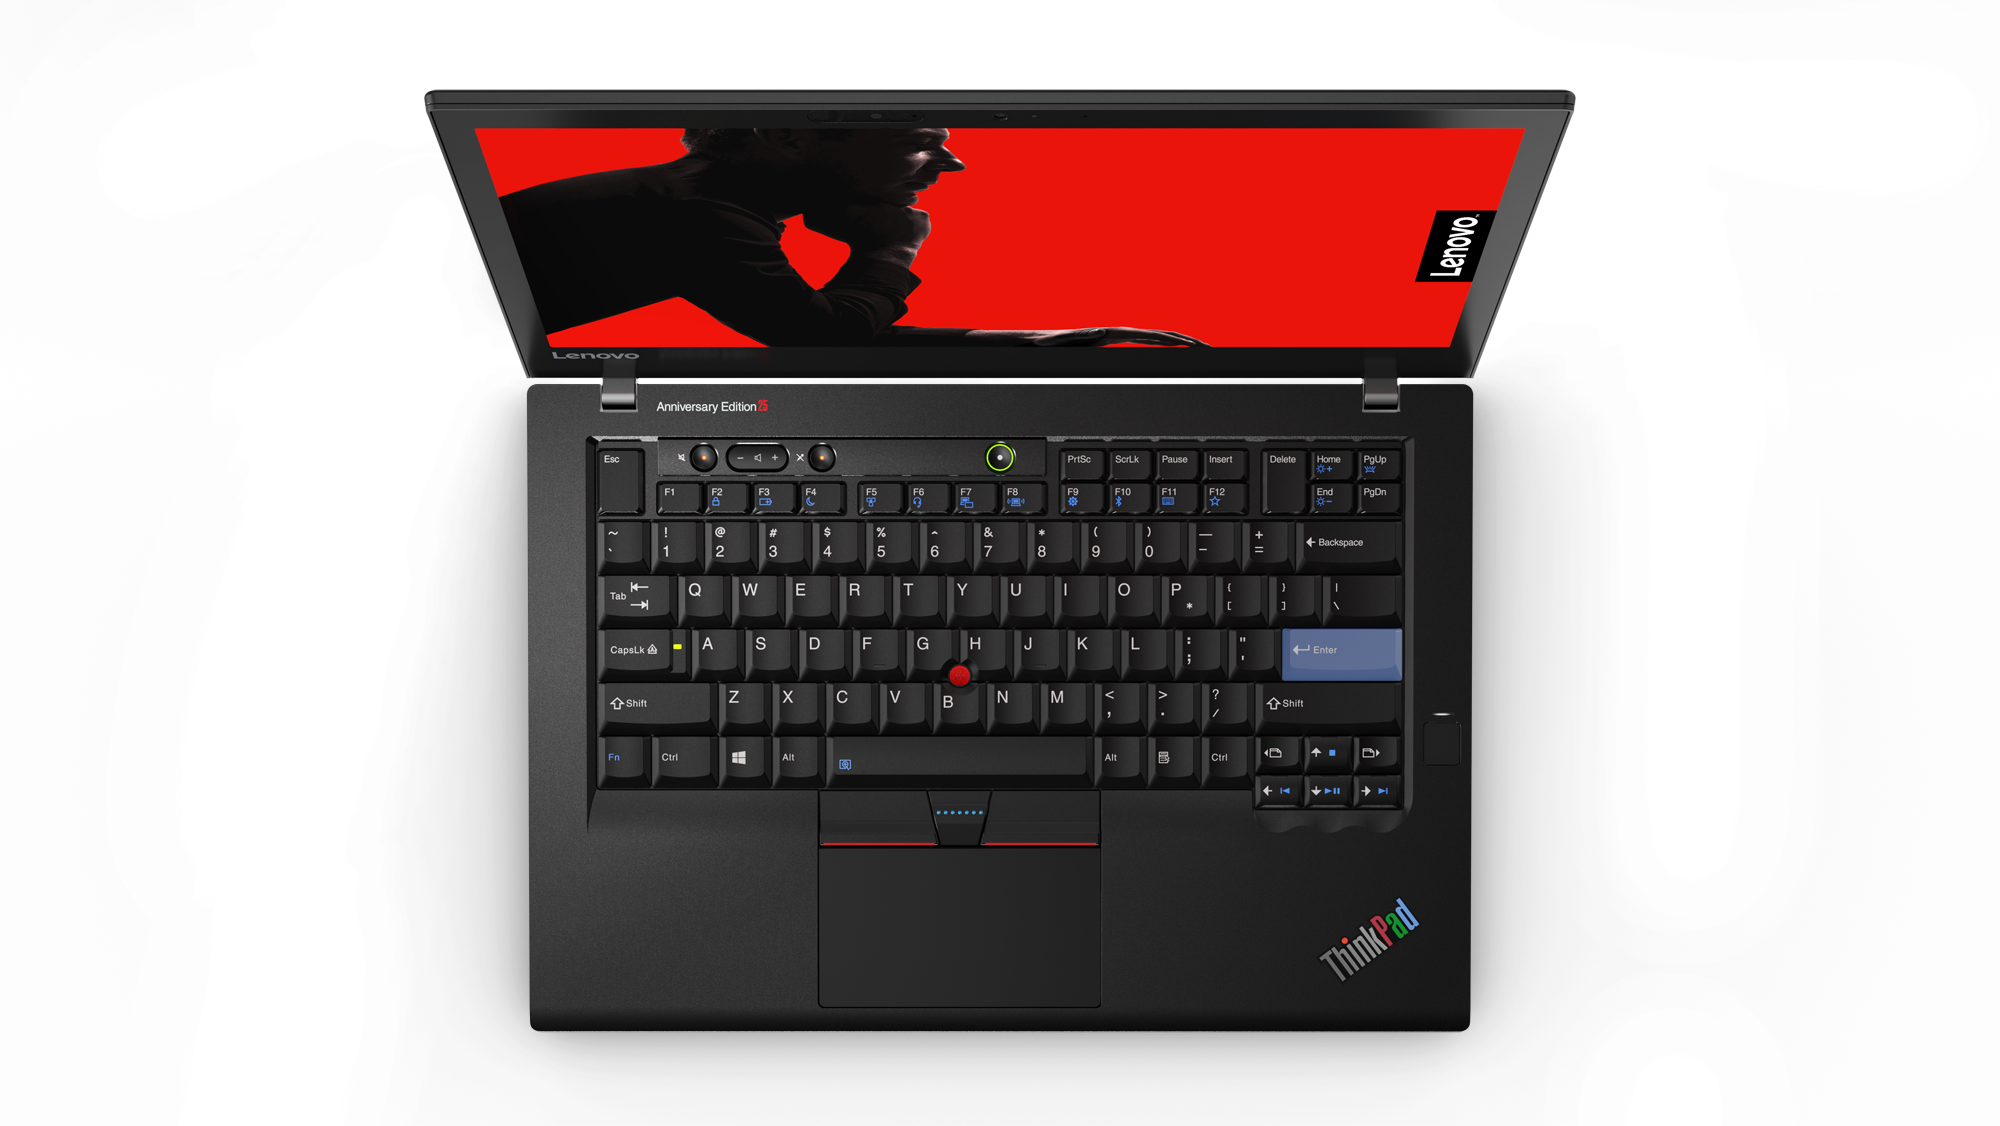 ThinkPad Anniversary Edition 25: Limited Edition ThinkPad Goes Retro